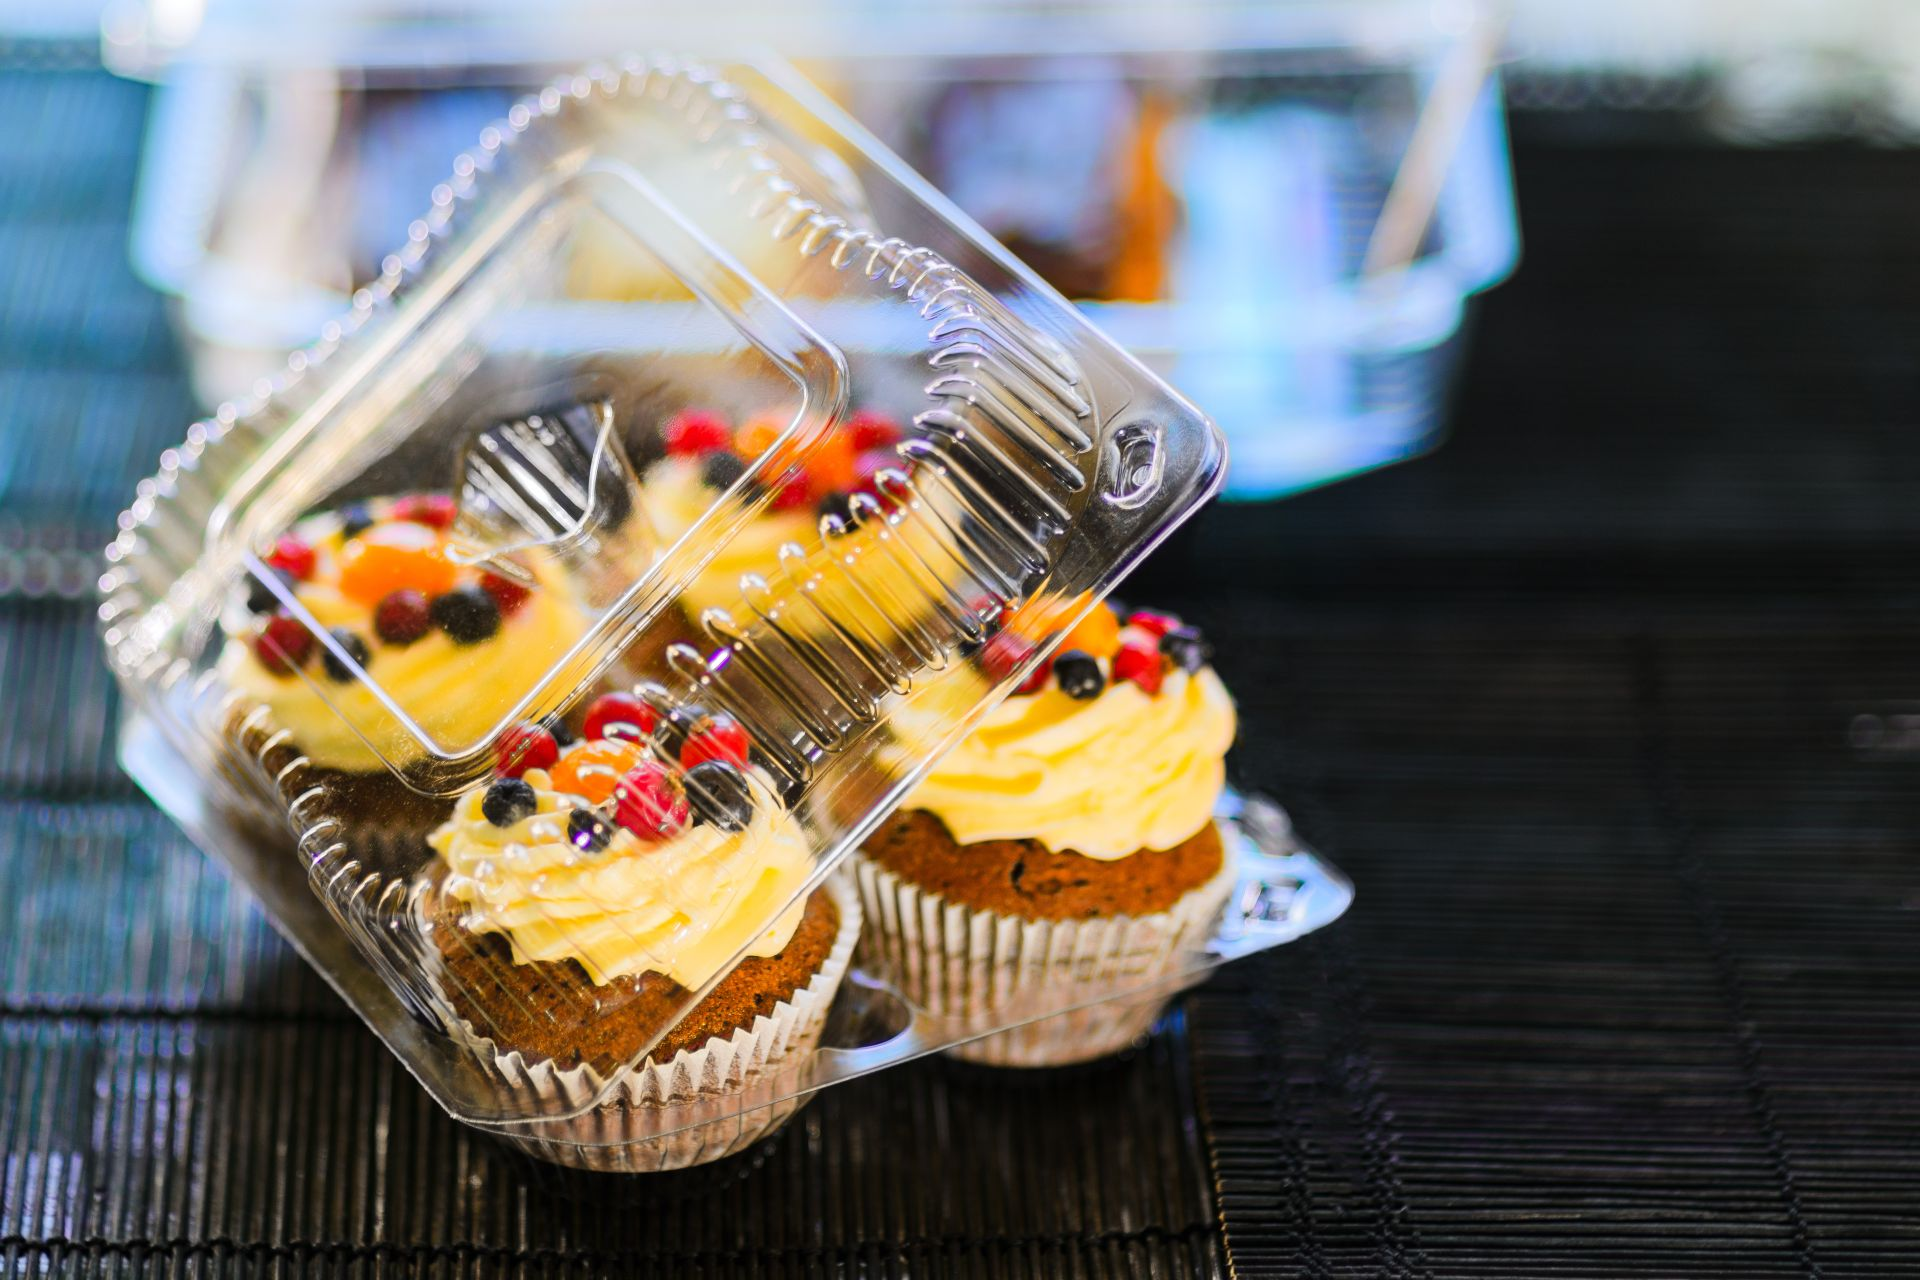 Packaging for cakes can be managed by our packaging software